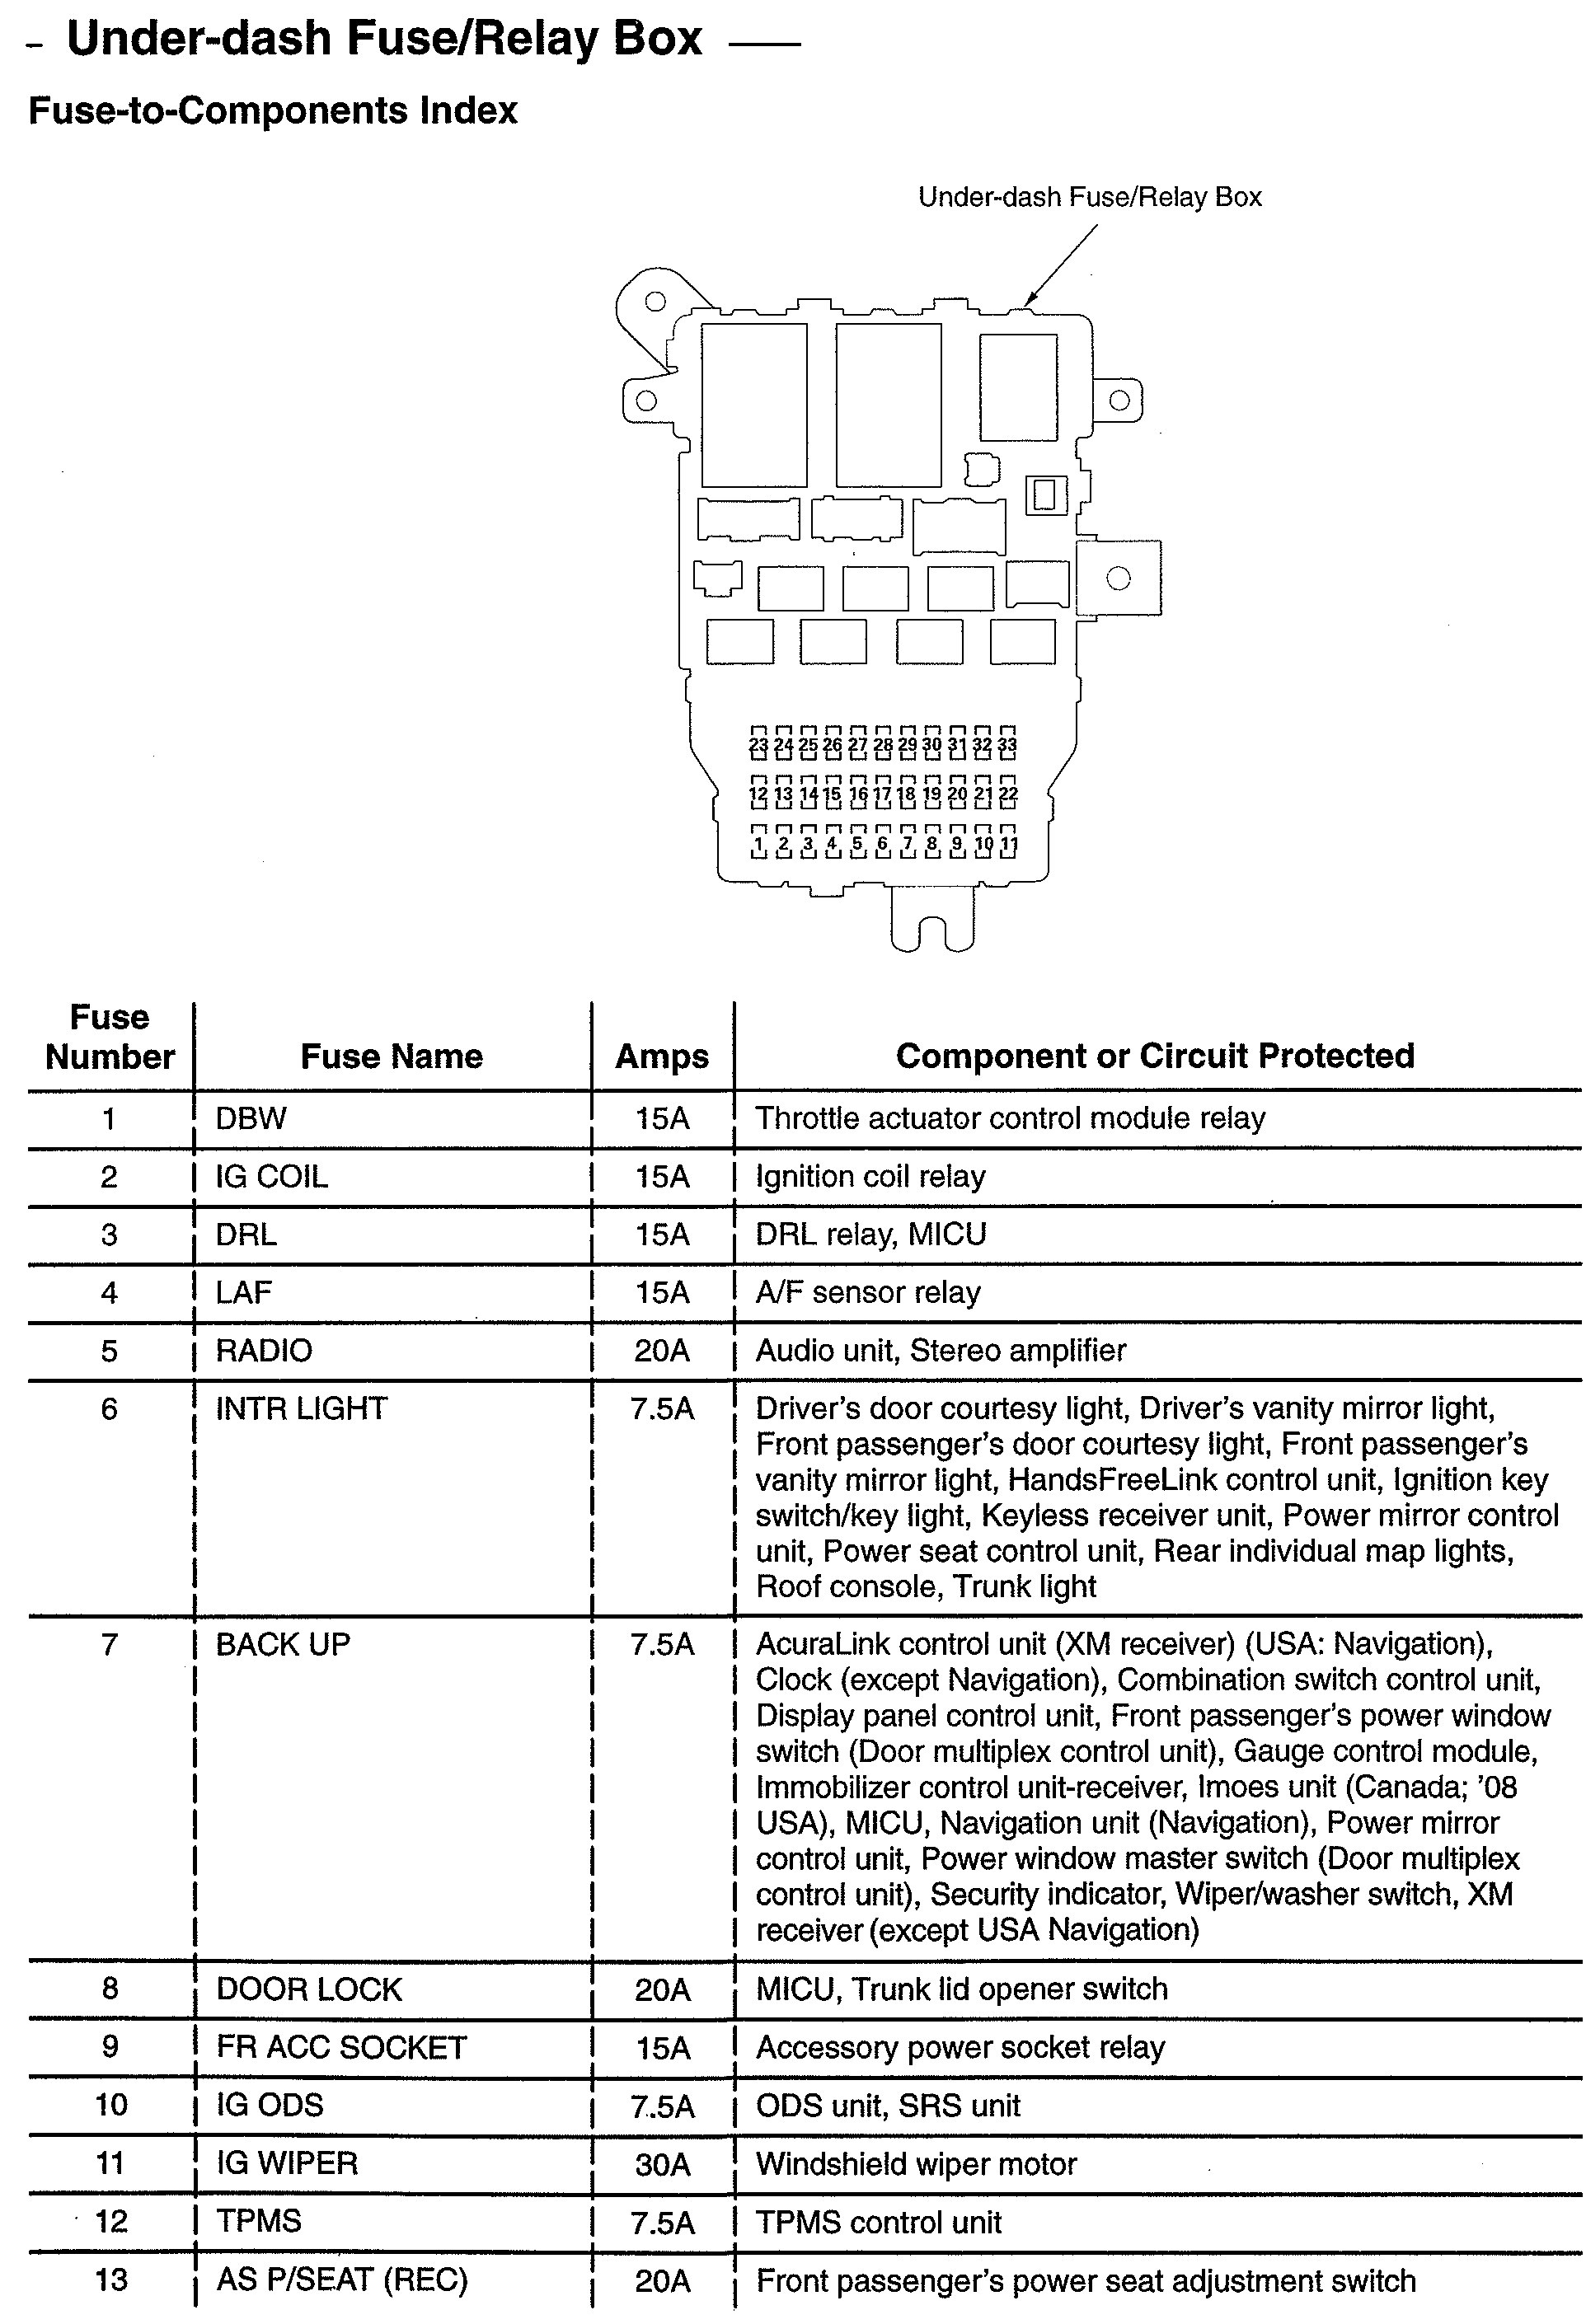 acura tl wiring diagram fuse panel 1 2008 acura tl (2008) wiring diagrams fuse panel carknowledge 2007 acura tl wiring diagram at crackthecode.co